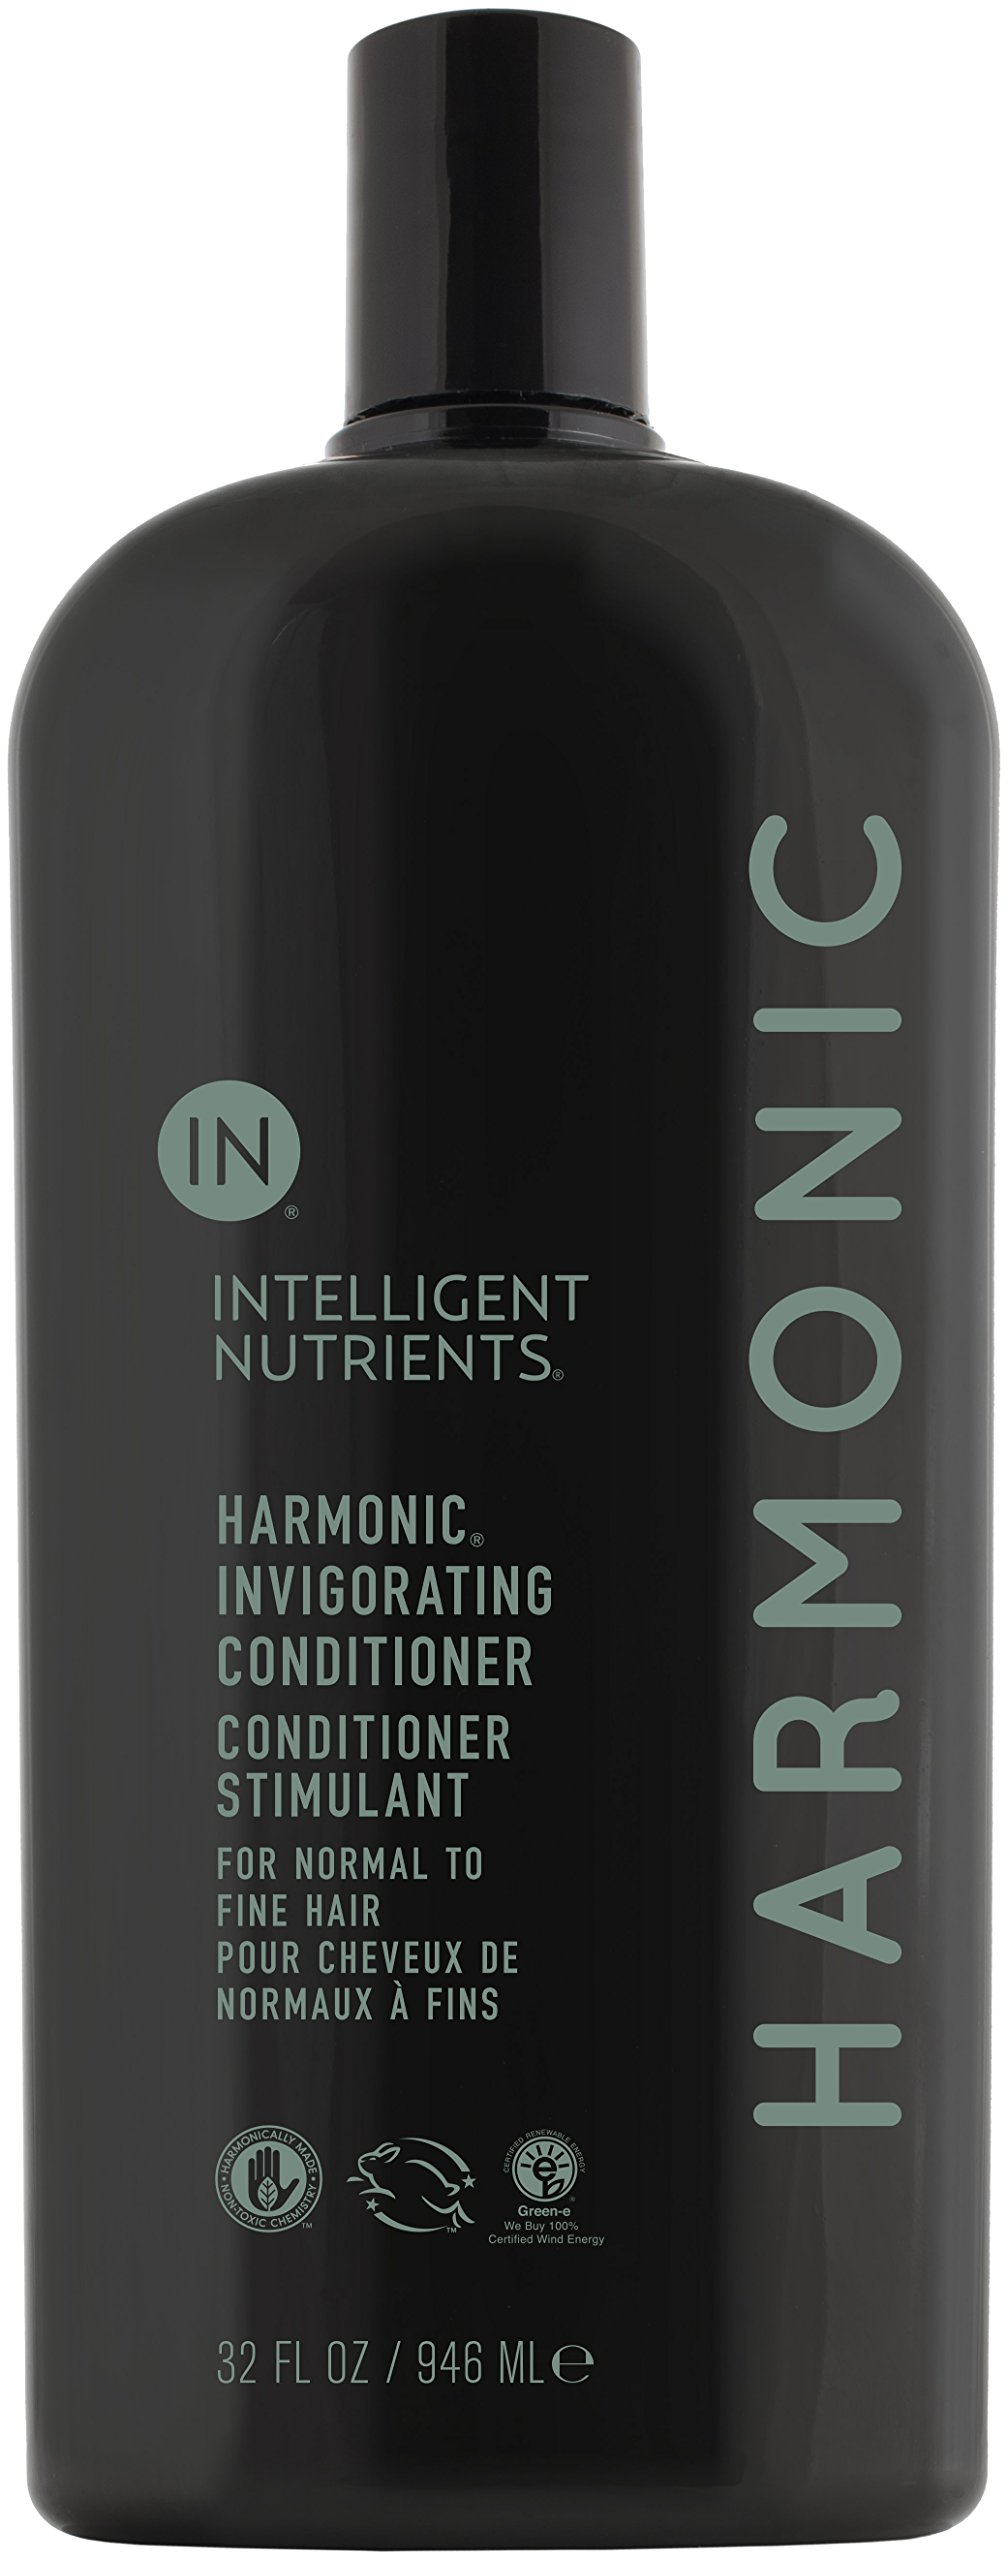 Intelligent Nutrients Environmental Size Harmonic Invigorating Conditioner - Hydrating, Non-Toxic Conditioner with Peppermint & Spearmint Oil - New Look, Same Tingle (32 oz)